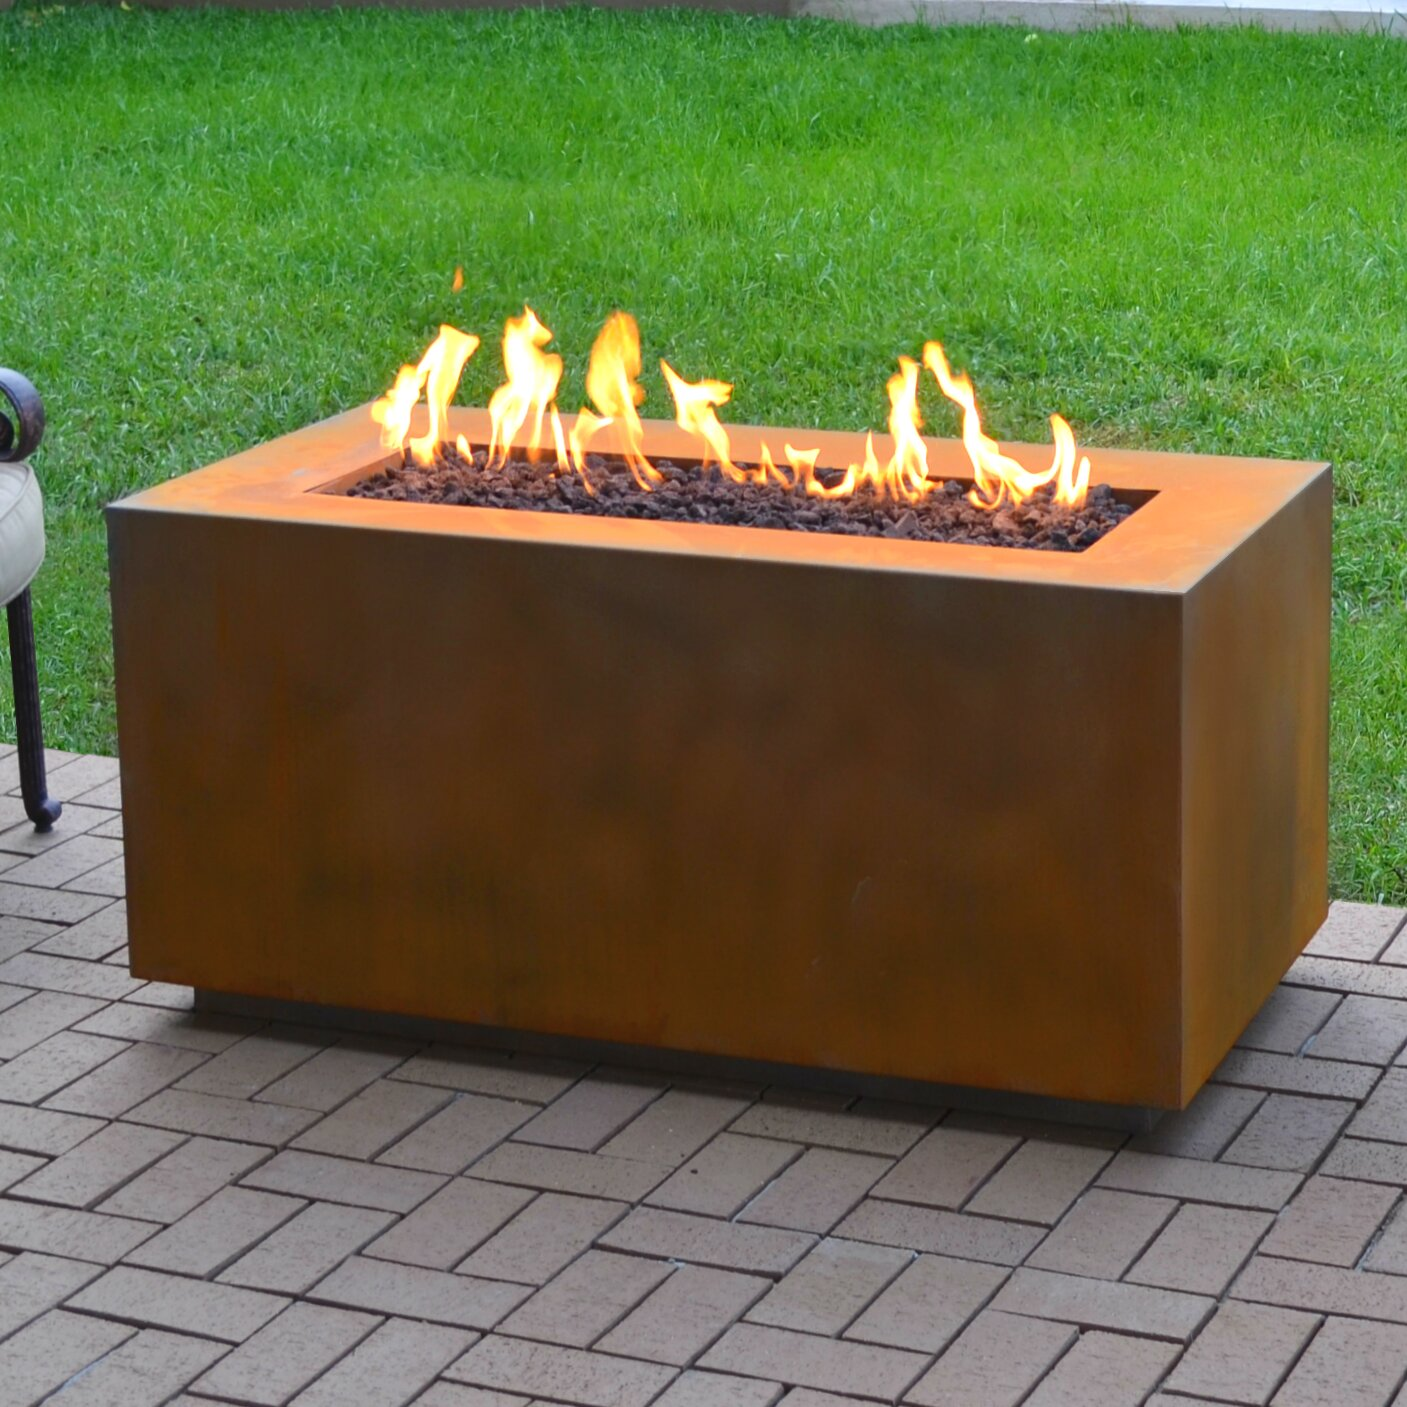 The outdoor plus corten steel propane fire pit table for Buy outdoor fire pit